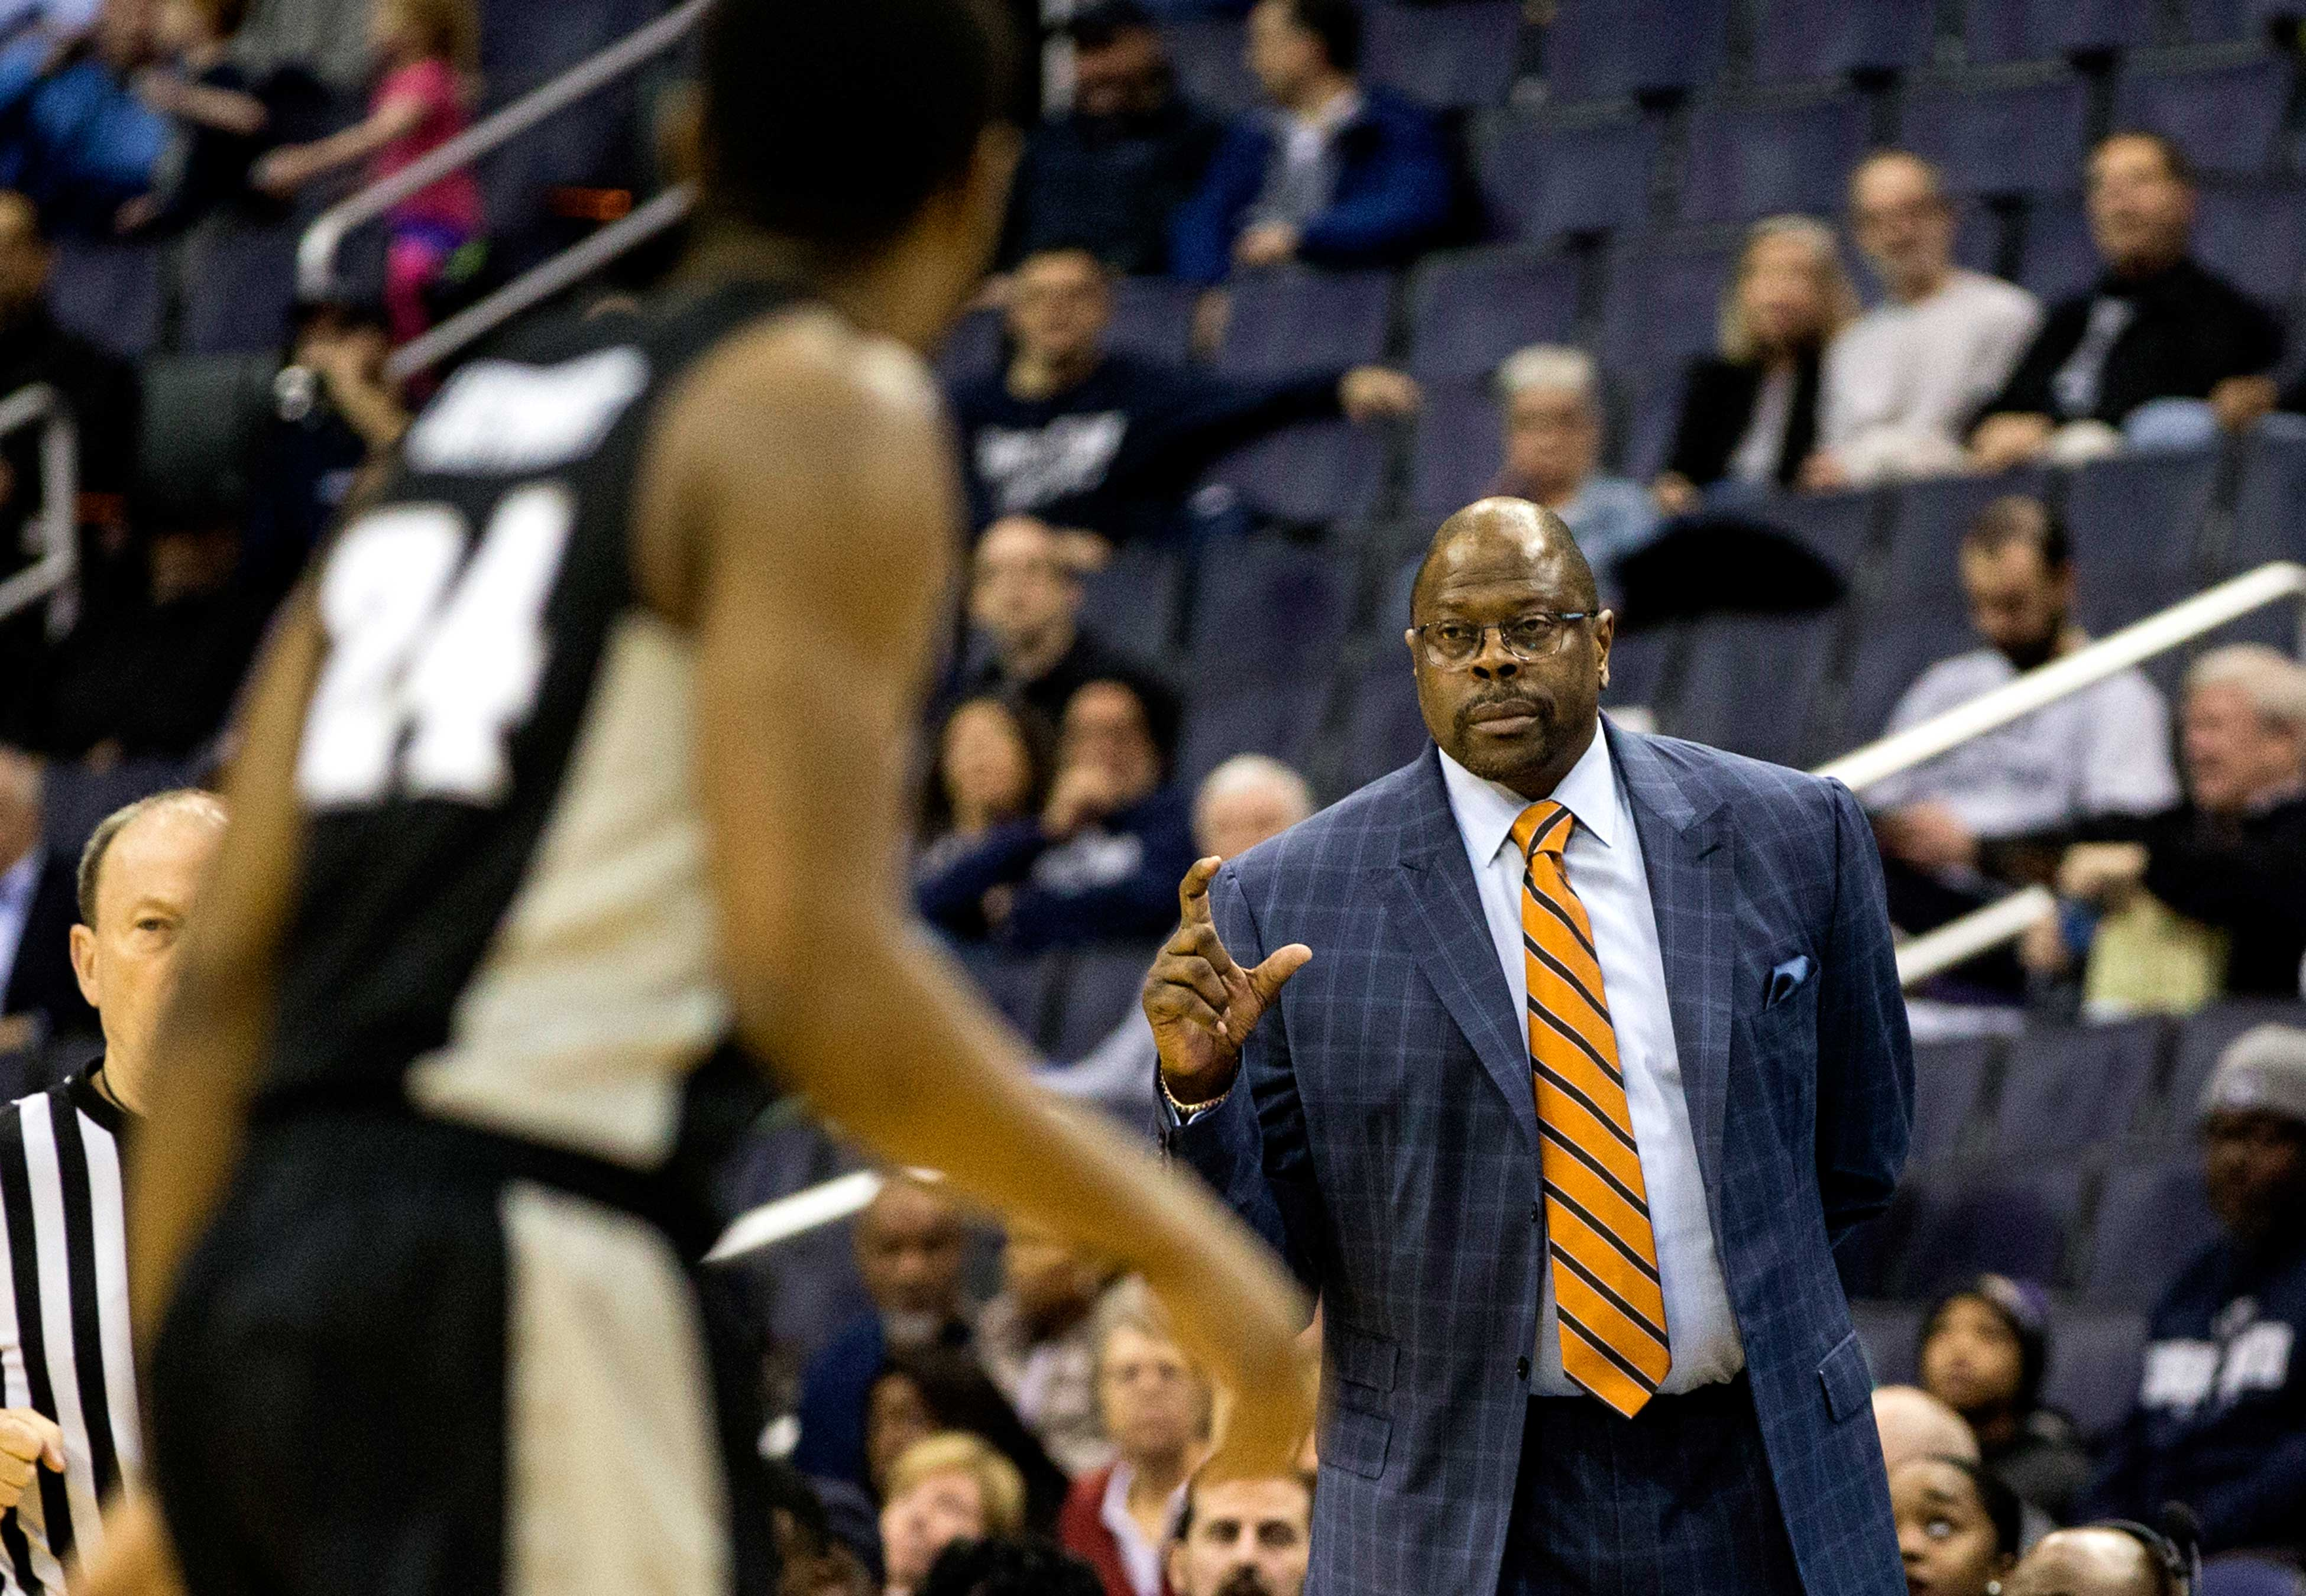 Georgetown Coach Patrick Ewing During A Big East Mens Basketball Game Between The Hoyas And Providence Friars On Feb